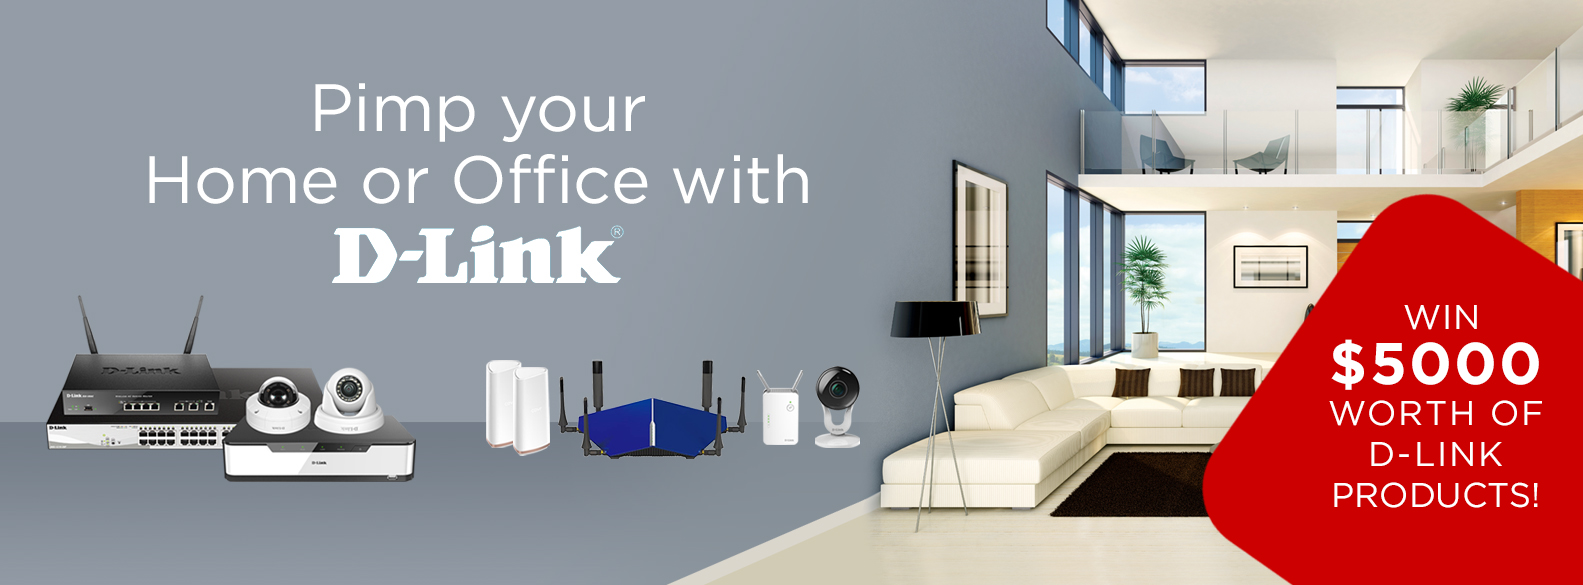 D-Link 2019 Promotion Pimp Your Home or Office